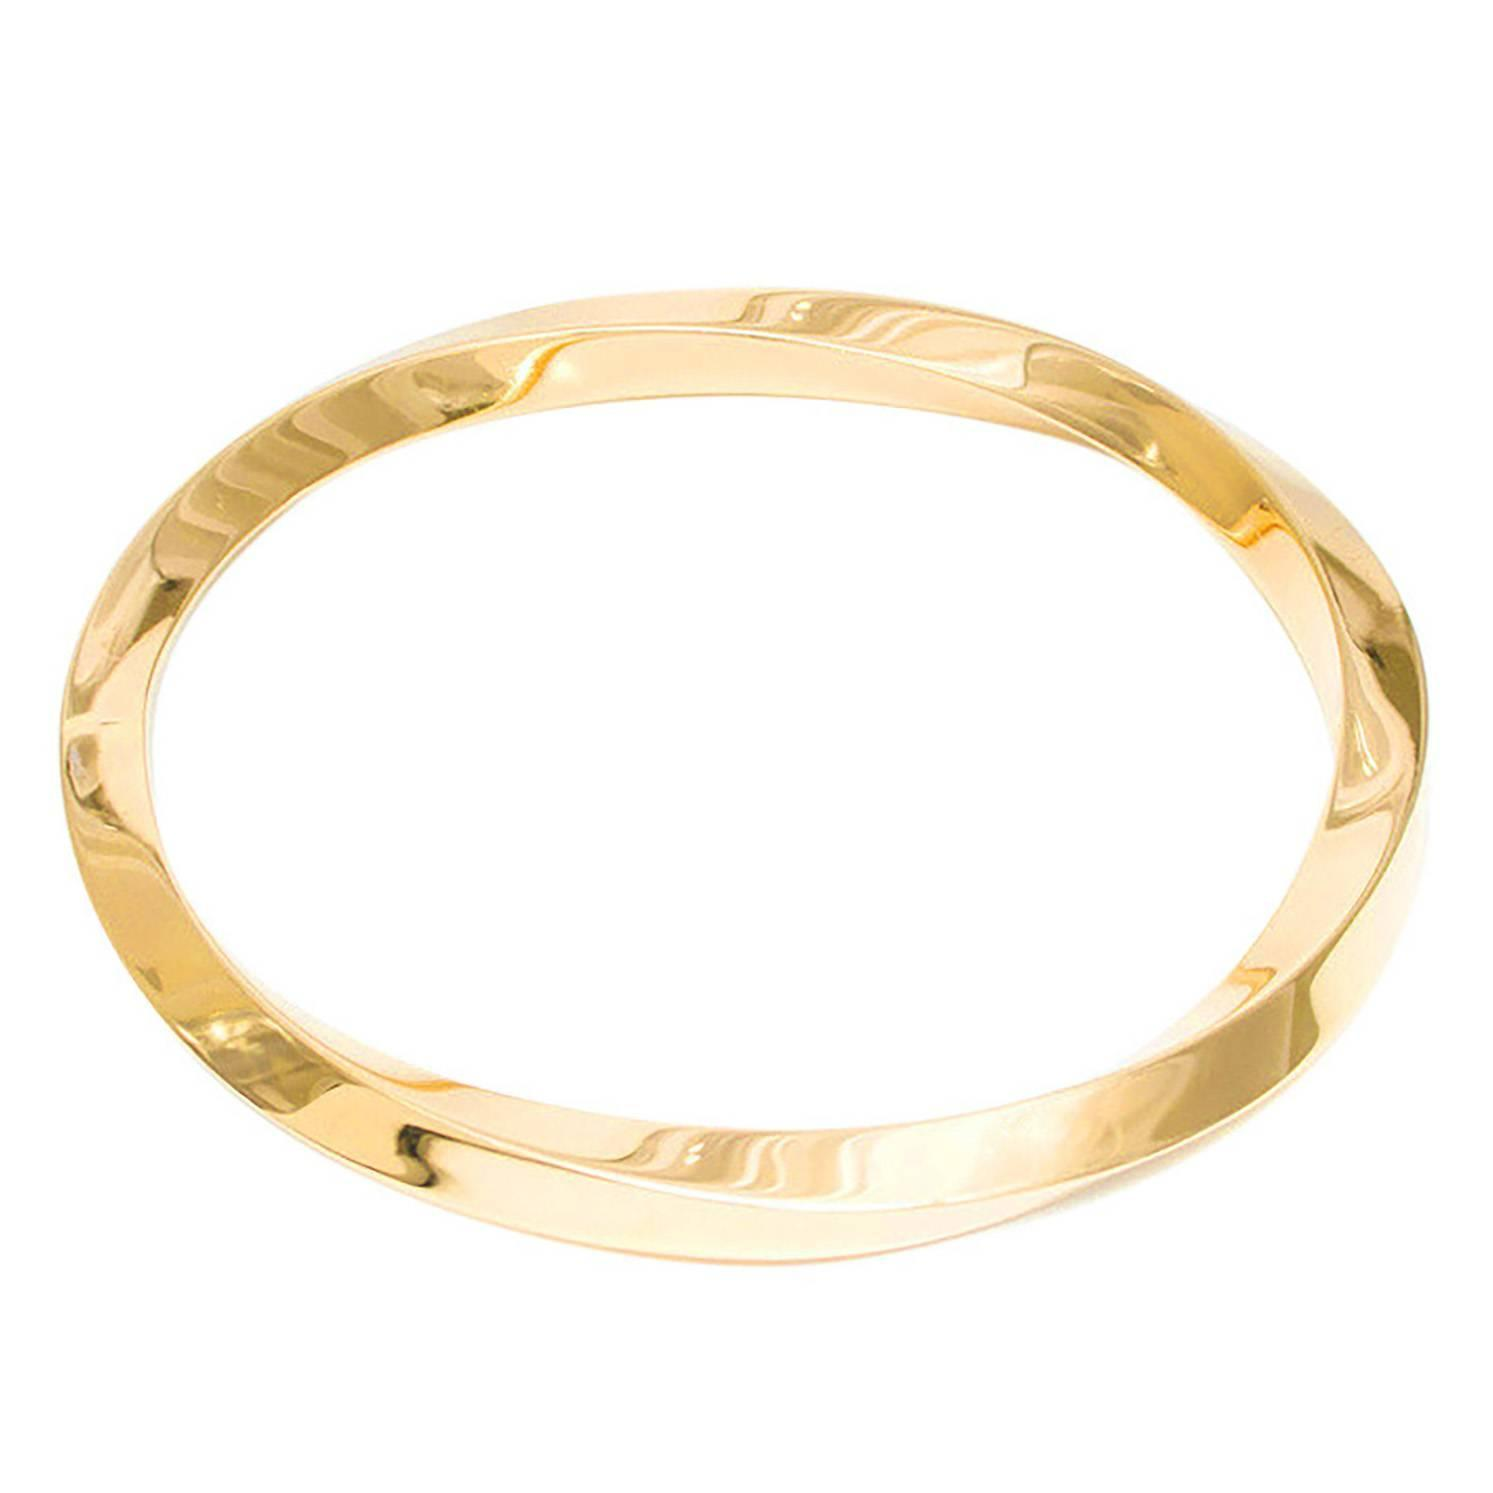 maschio diamond solitaire popular gioielli bangles online bracelet ice gold bangle yellow with llumins milano shop